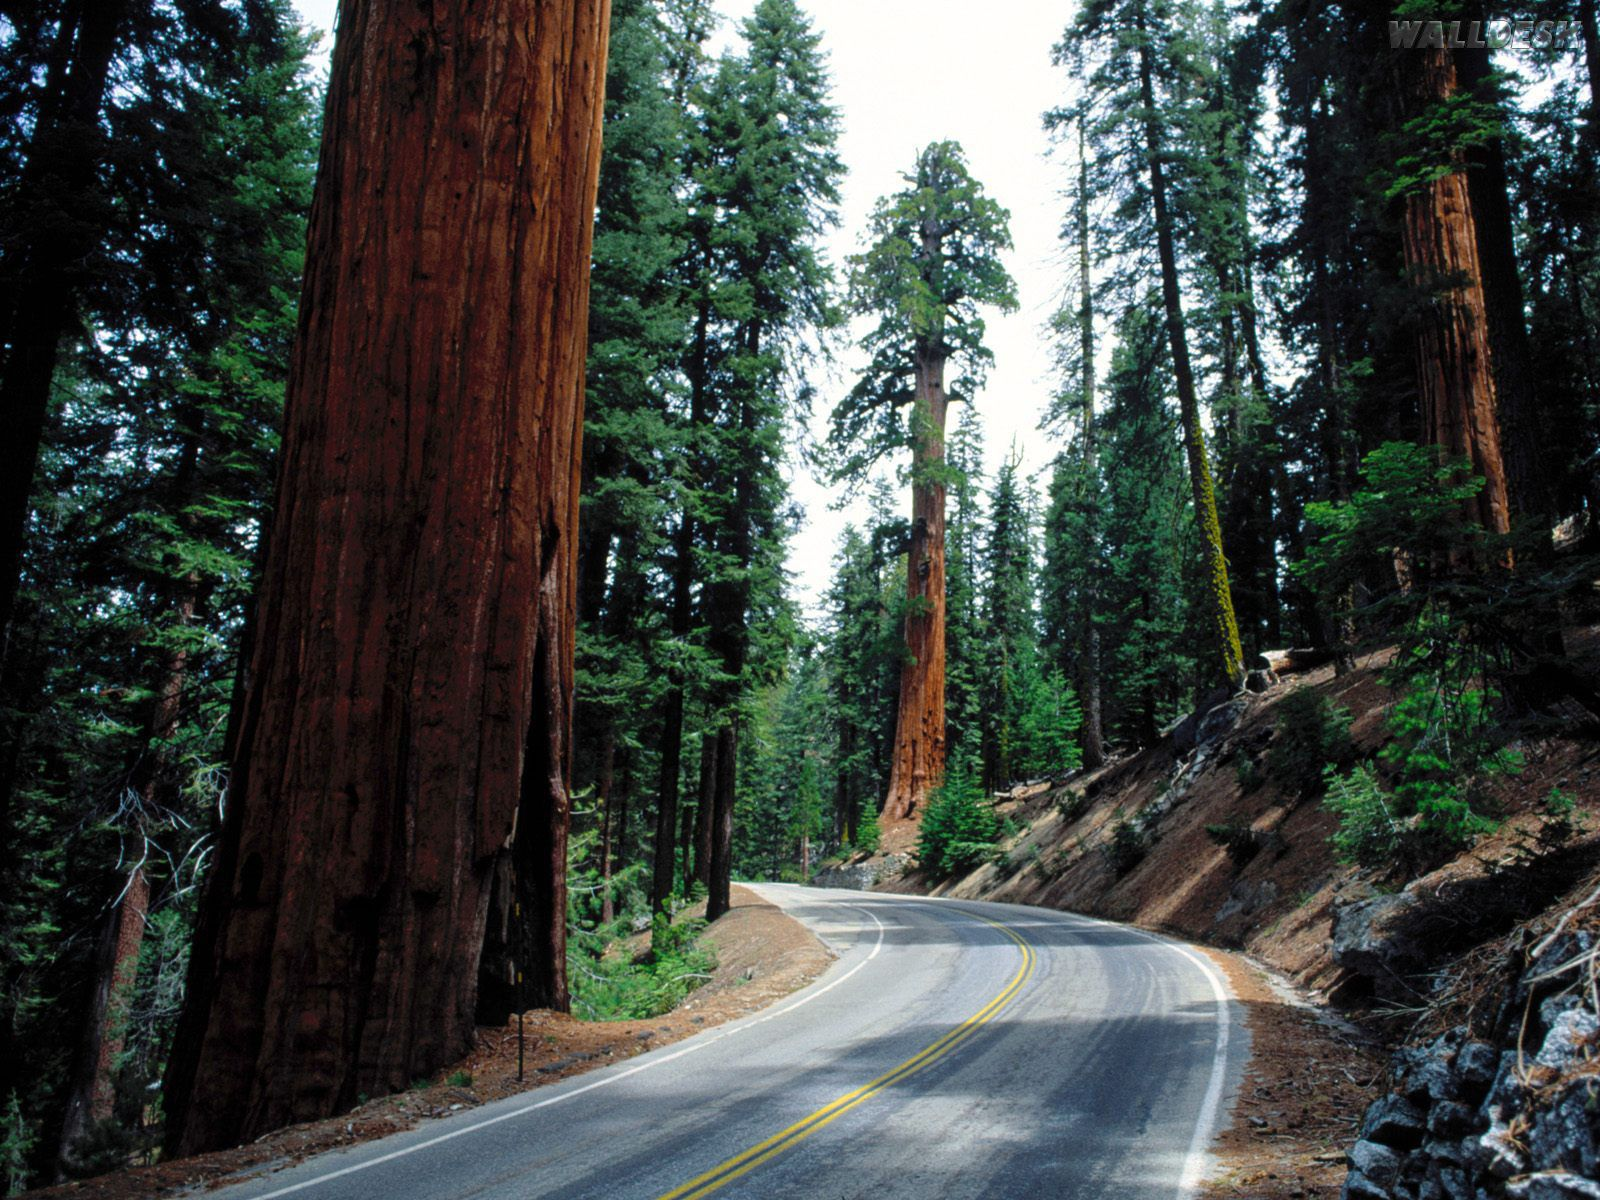 Sequoia National Park Wallpaper Papel de parede Redwood Road 1600x1200